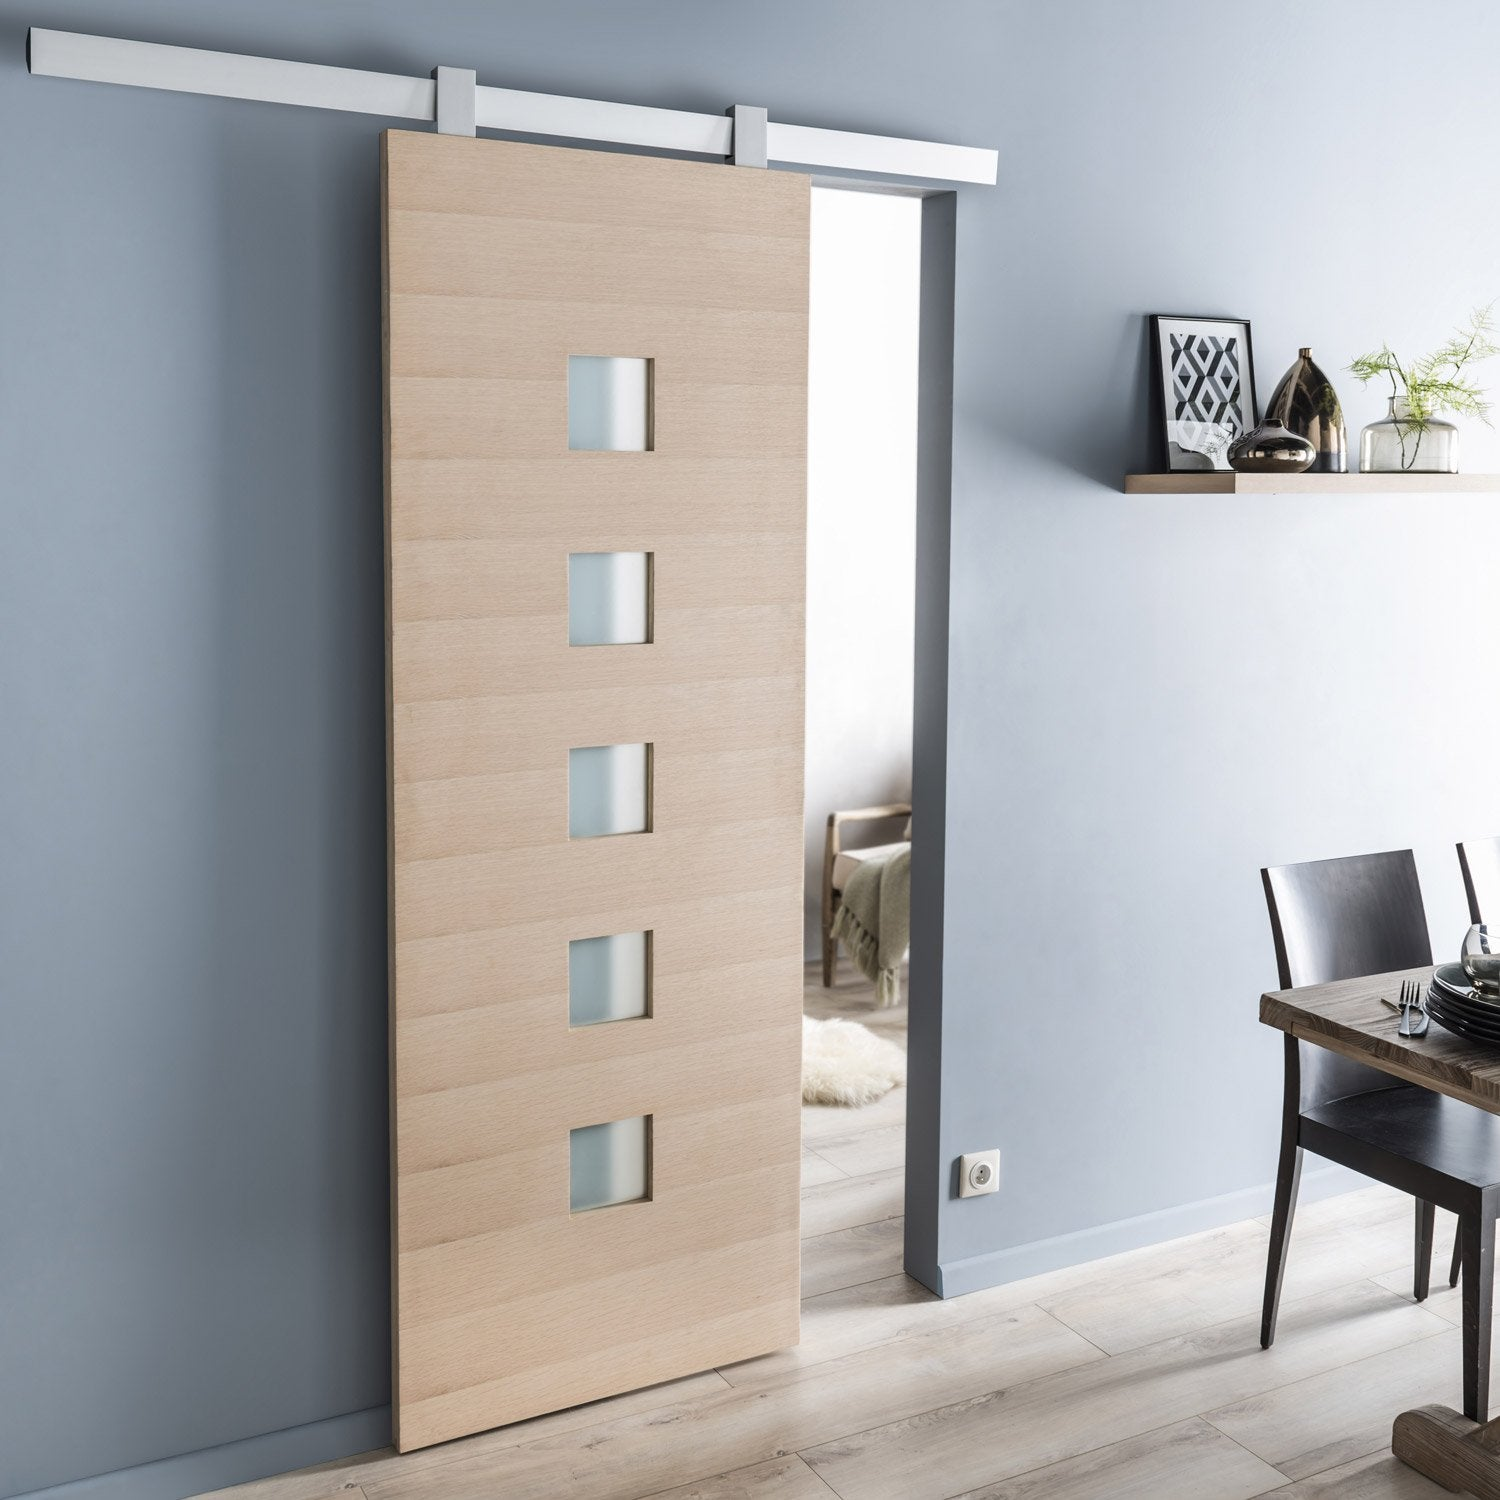 Ensemble porte coulissante l o ch ne plaqu ch ne avec le for Porte de renovation interieur castorama